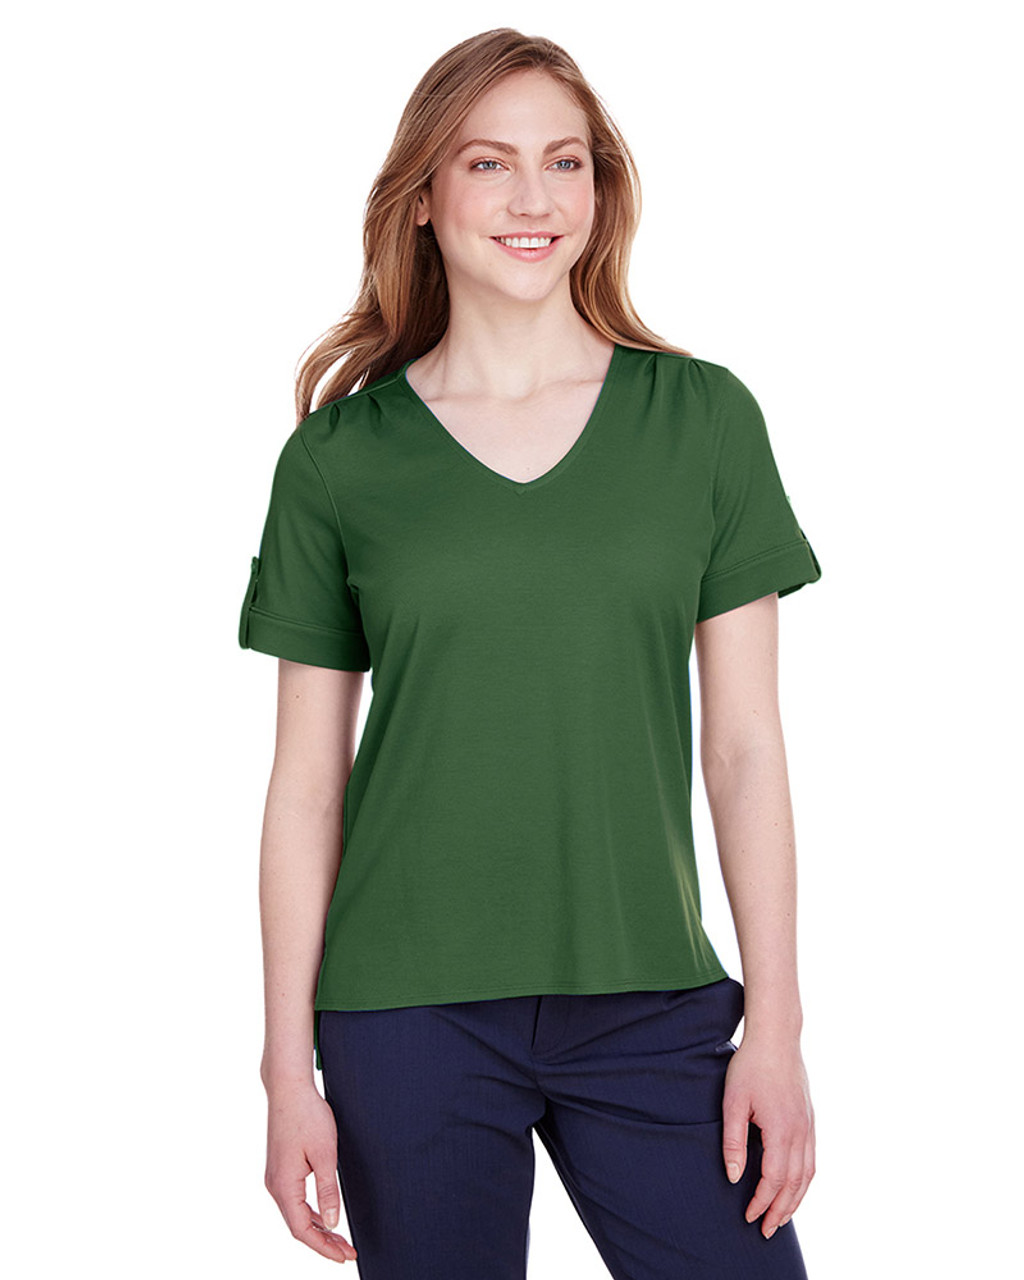 Forest - DG20WB Devon & Jones Ladies' CrownLux Performance™ Plaited Rolled-Sleeve Top | Blankclothing.ca